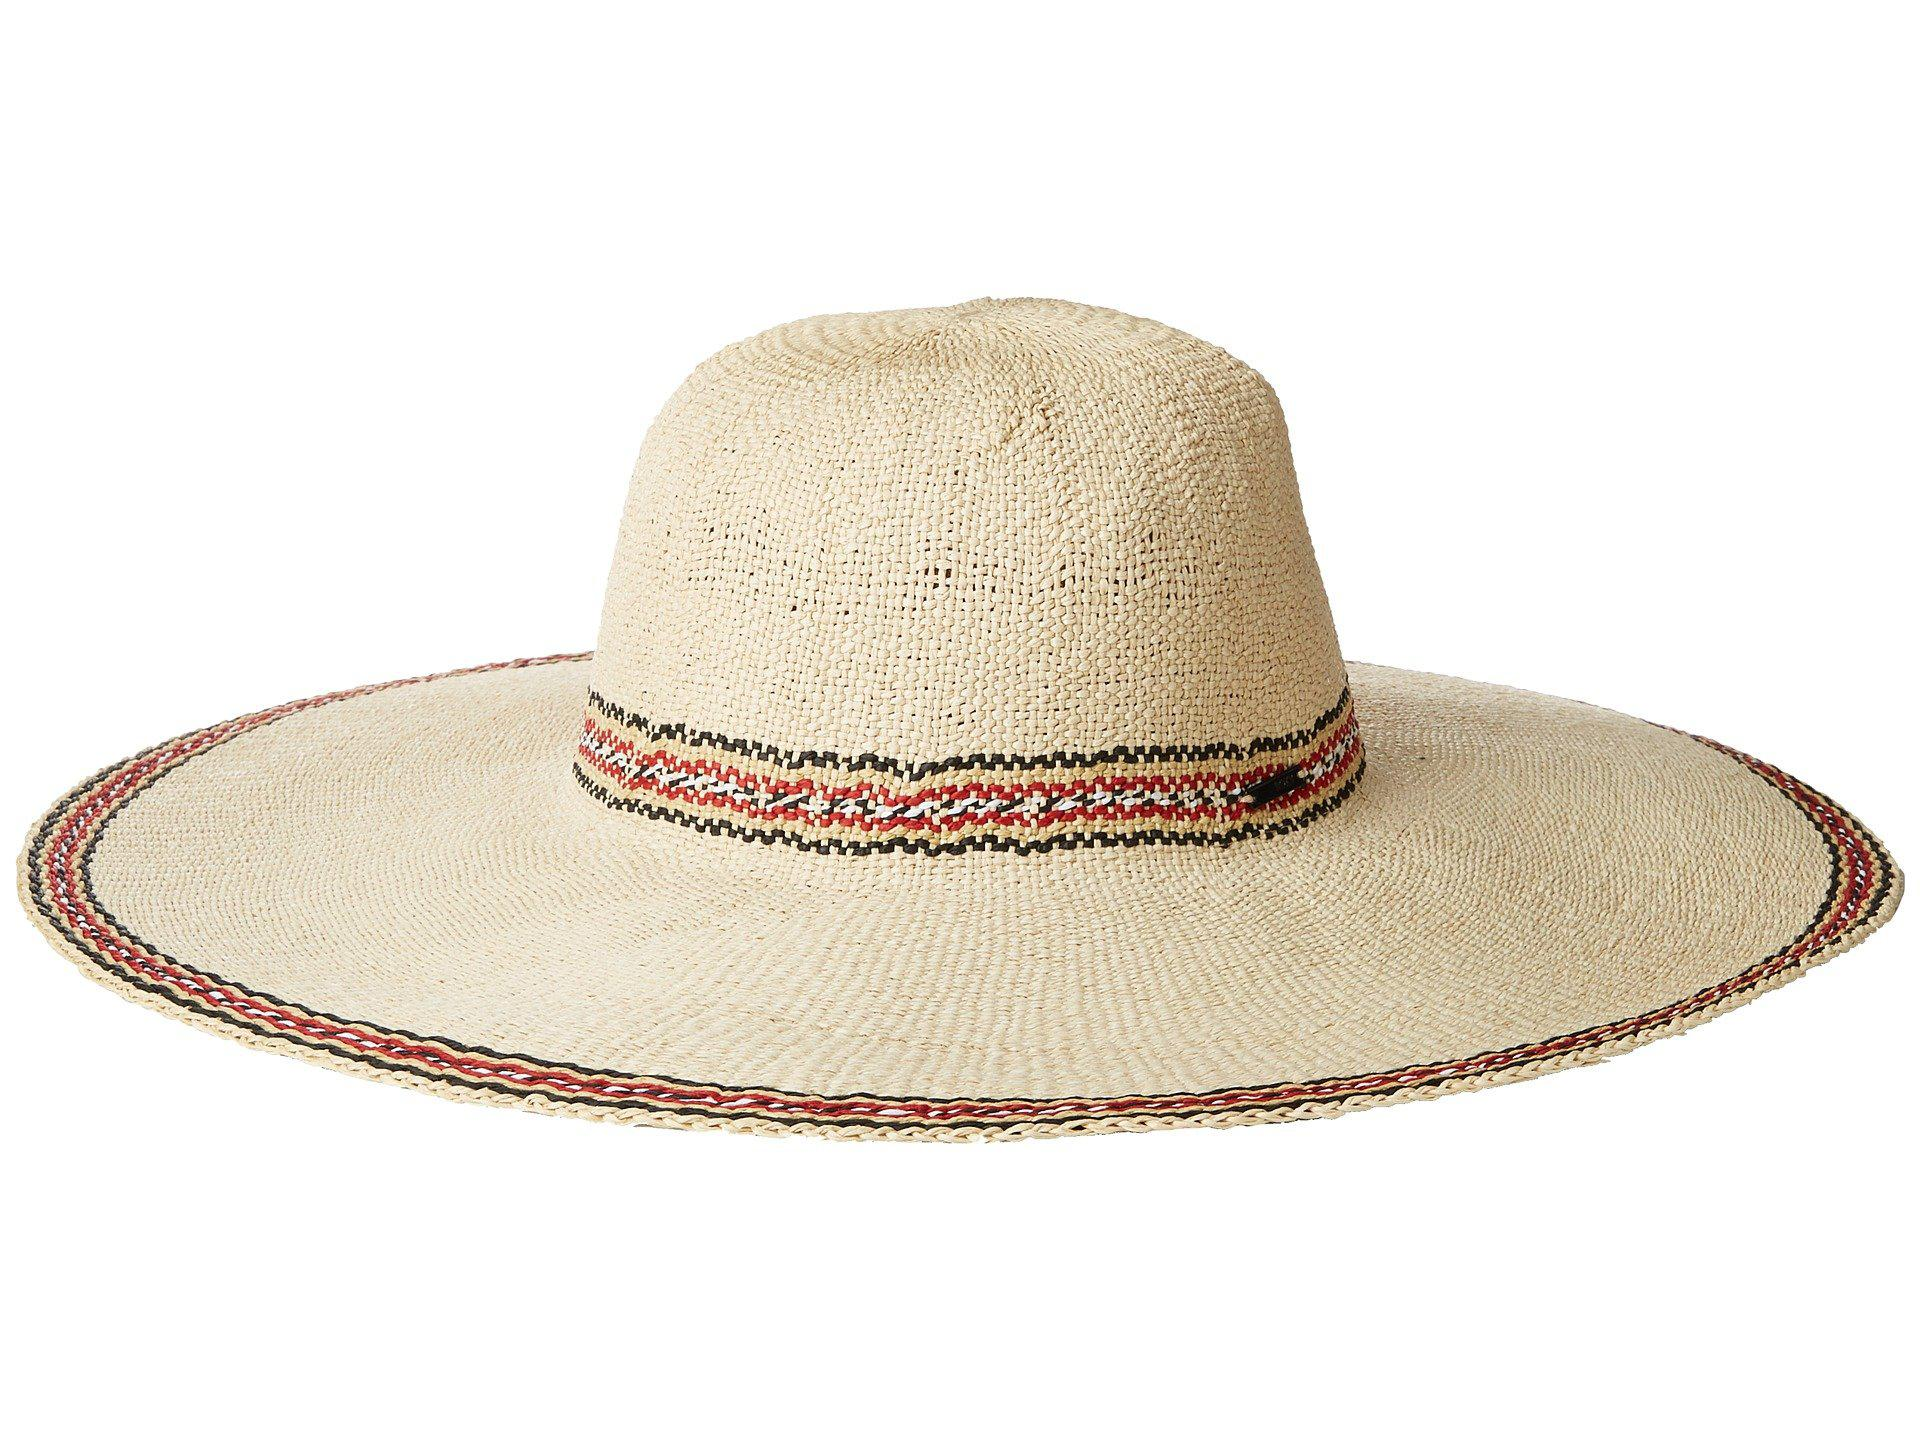 c350250dc61ca Roxy Under The Coconuts (natural) Traditional Hats in Natural - Lyst